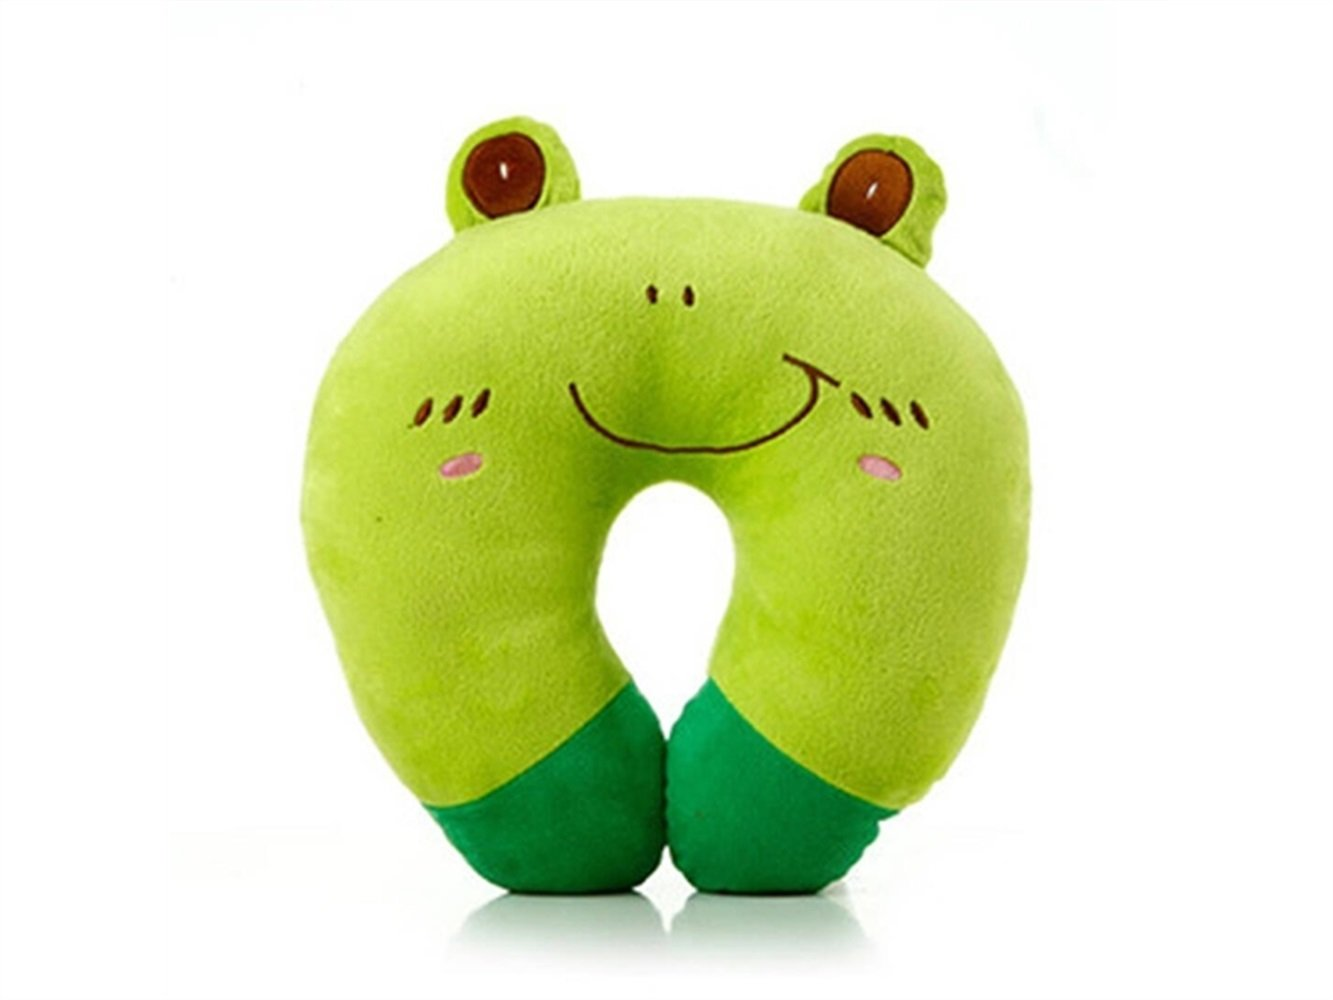 Yuchoi Perfectly Shaped Cartoon Animal U-shaped Neck Pillow Travel Car Airplane Seat Neck Rest for Home Office(Frog)